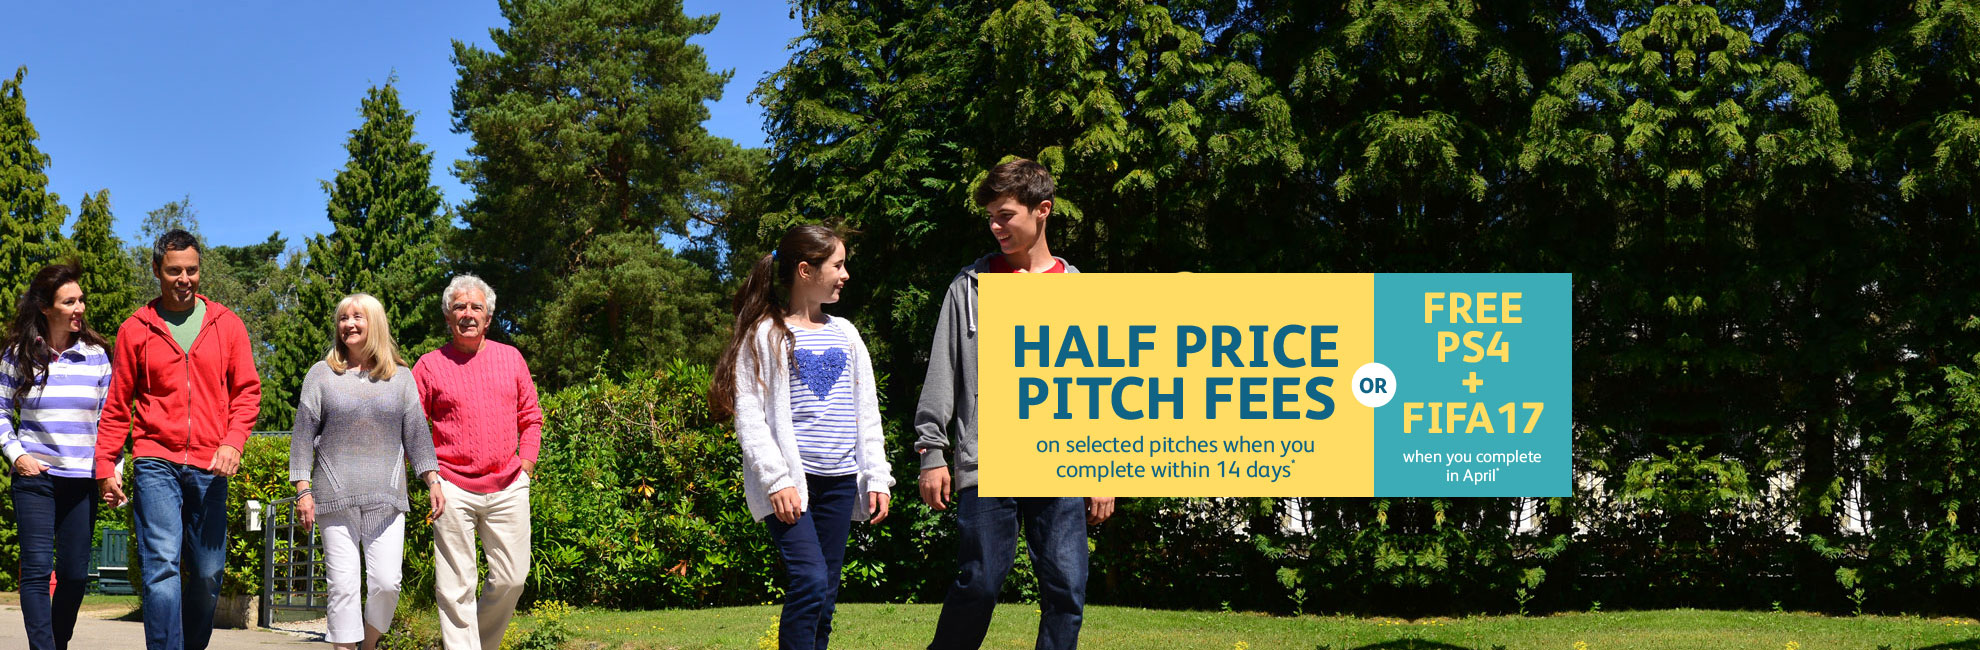 half price pitch fees